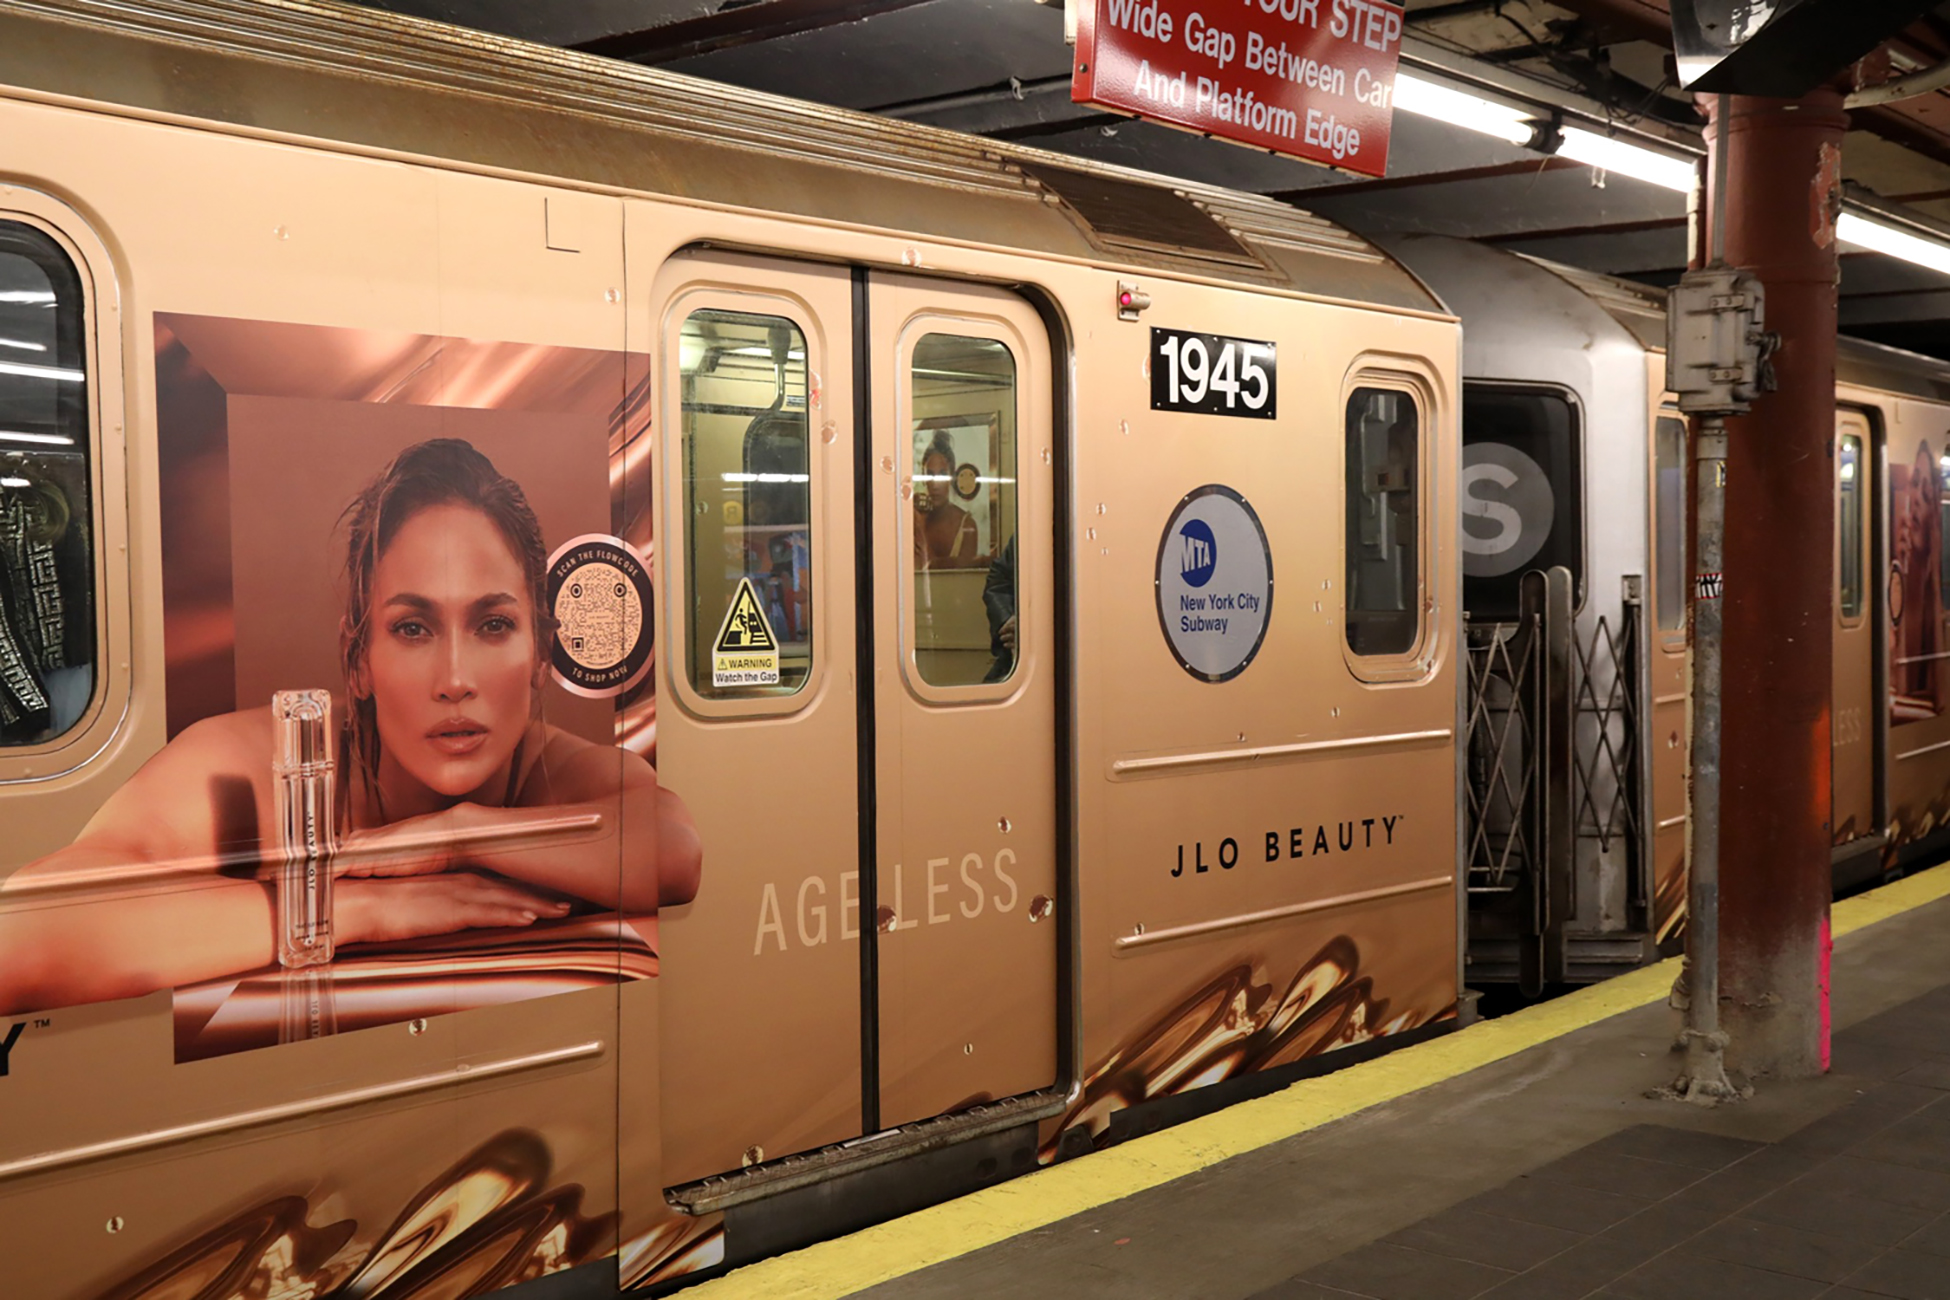 Jennifer Lopez's JLo Beauty-wrapped train